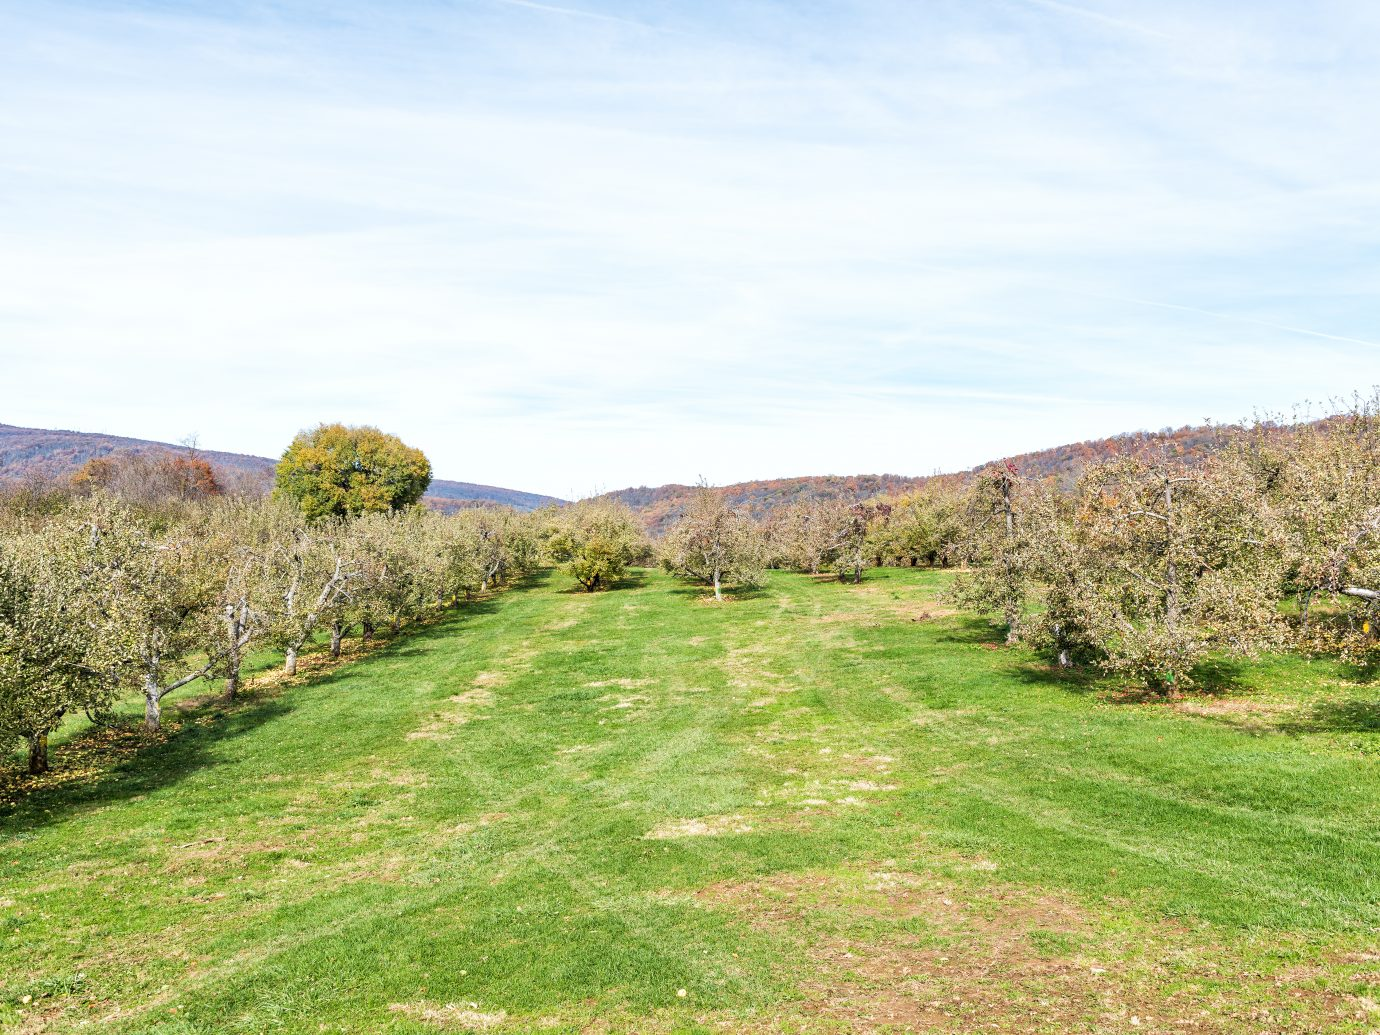 Apple orchard meadow with many trees, fallen yellow fruit on garden in autumn fall, farm countryside in Virginia, green grass path alley